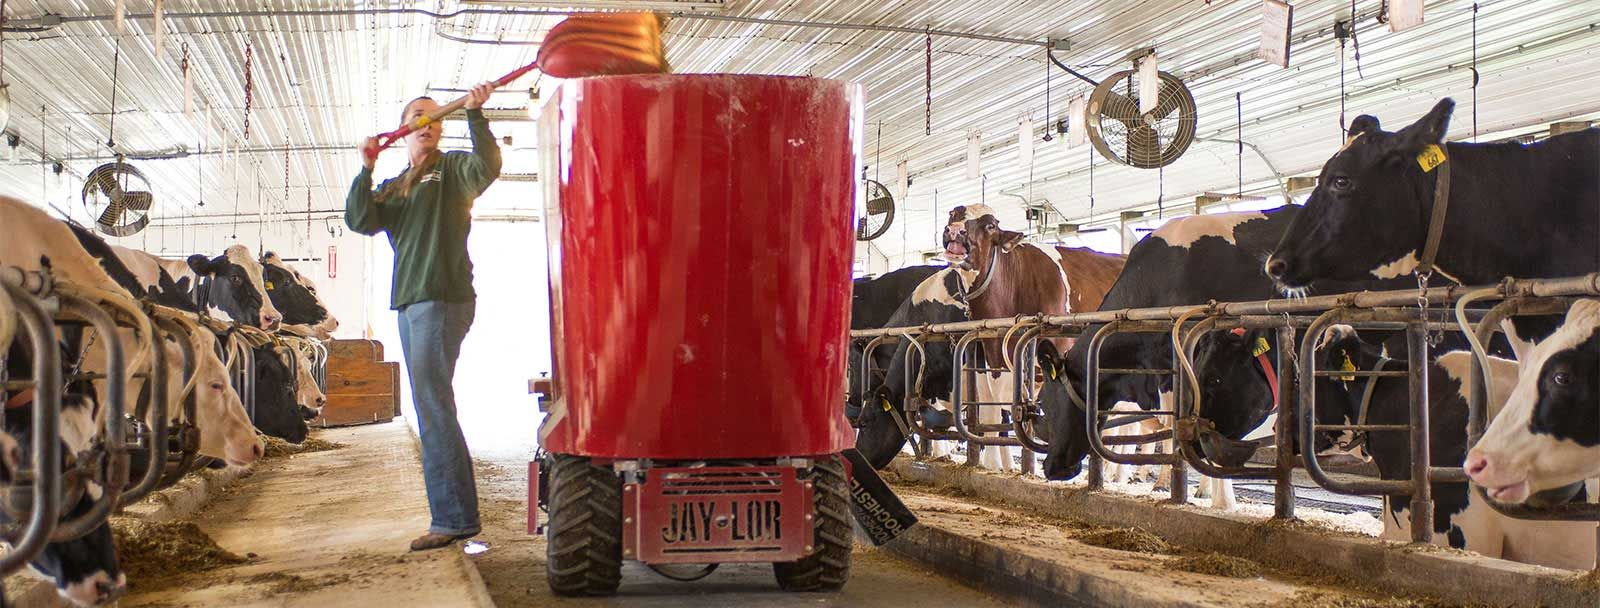 The Fairchild Dairy Teaching and Research Center at UNH turns 25 on Wednesday, Oct. 29, 2014